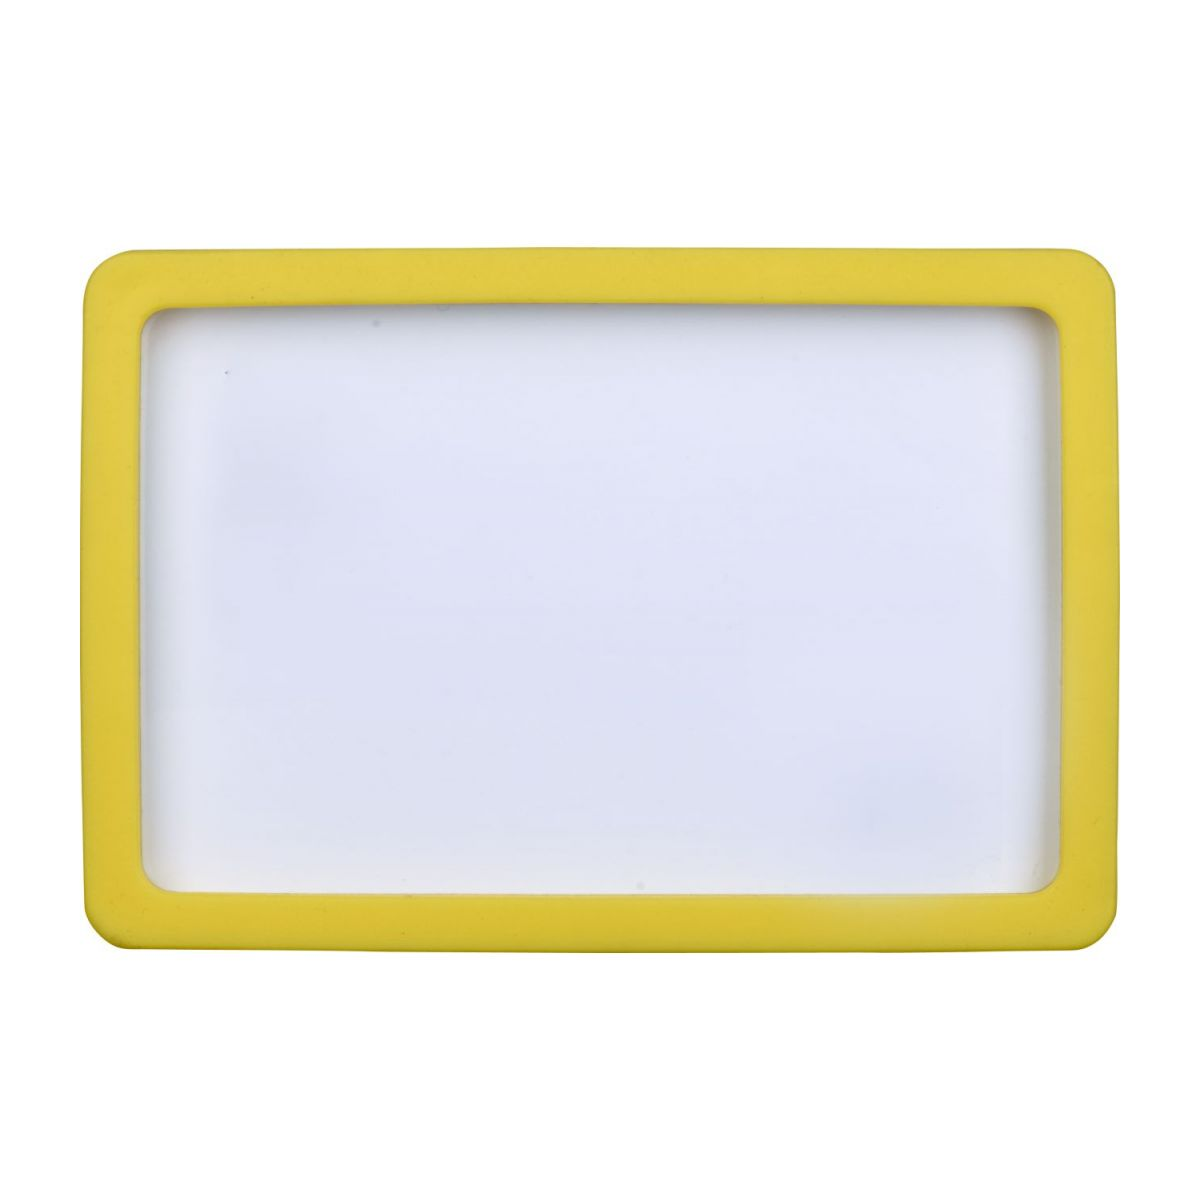 Fridge 10 X 16 Yellow Photo Frame Habitat